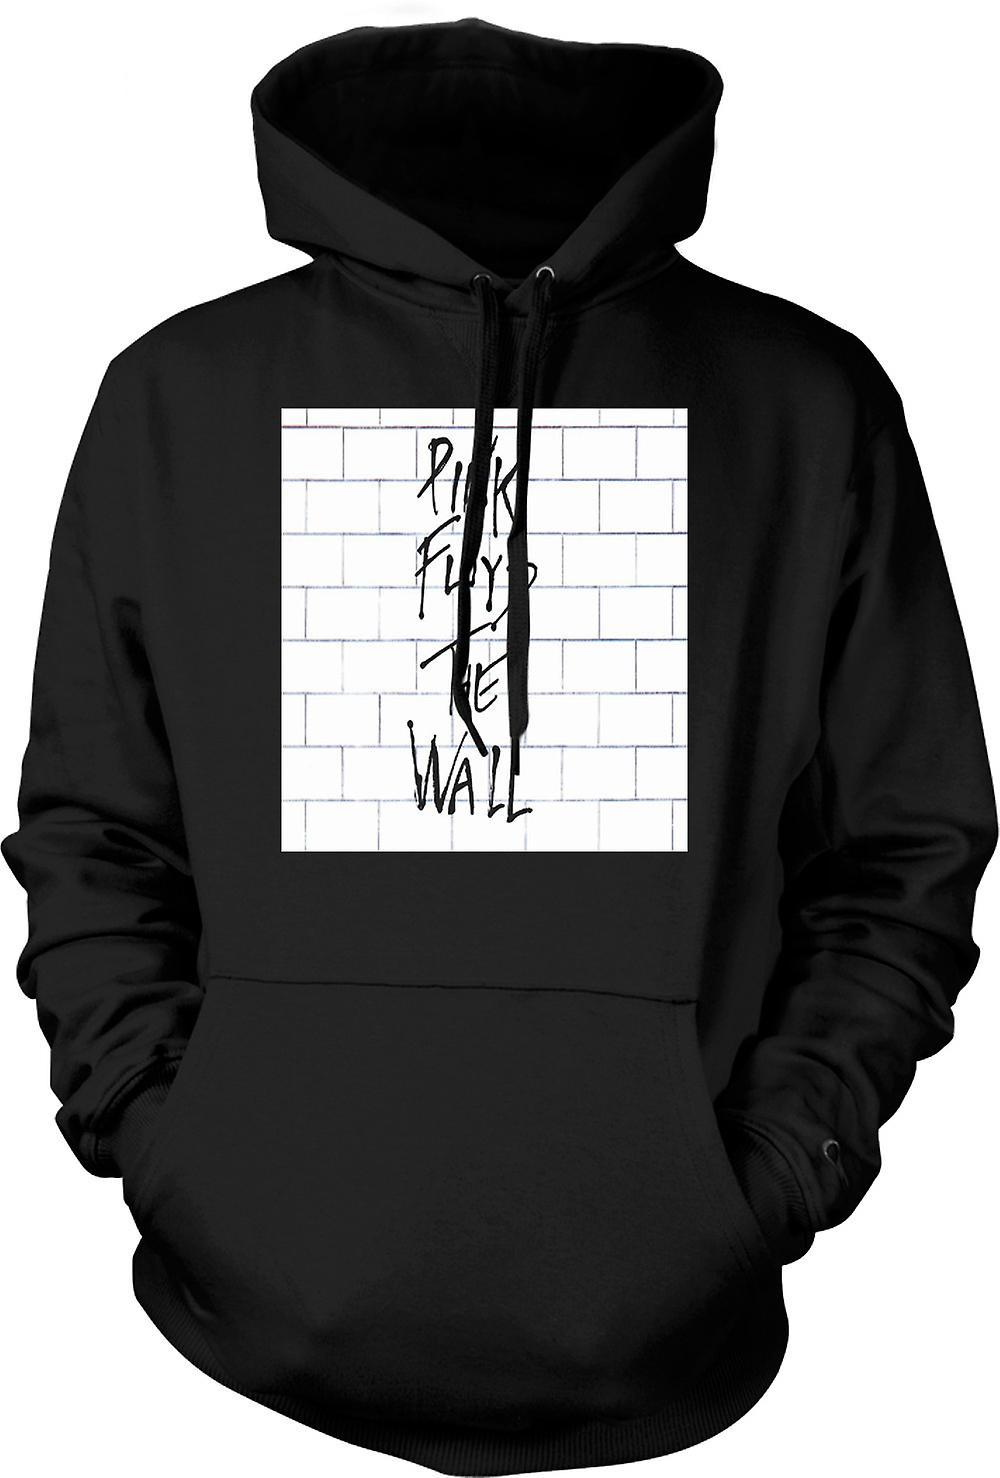 Kids Hoodie - Pink Floyd - The Wall - copertina Album